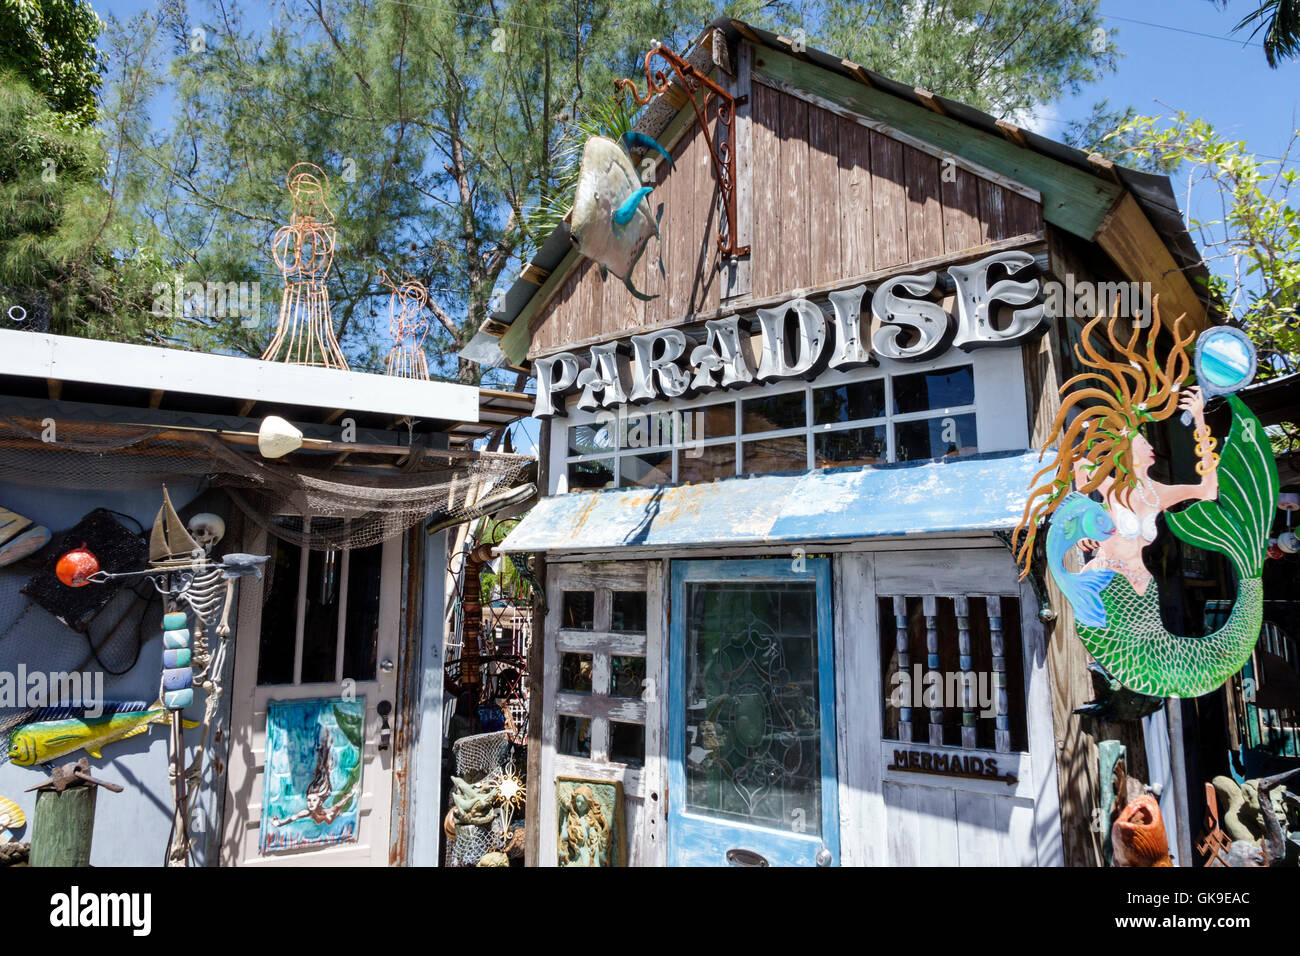 Florida Cortez Sea Hagg shopping business nautical curiosity shop antiques exterior mermaid paradise sign - Stock Image